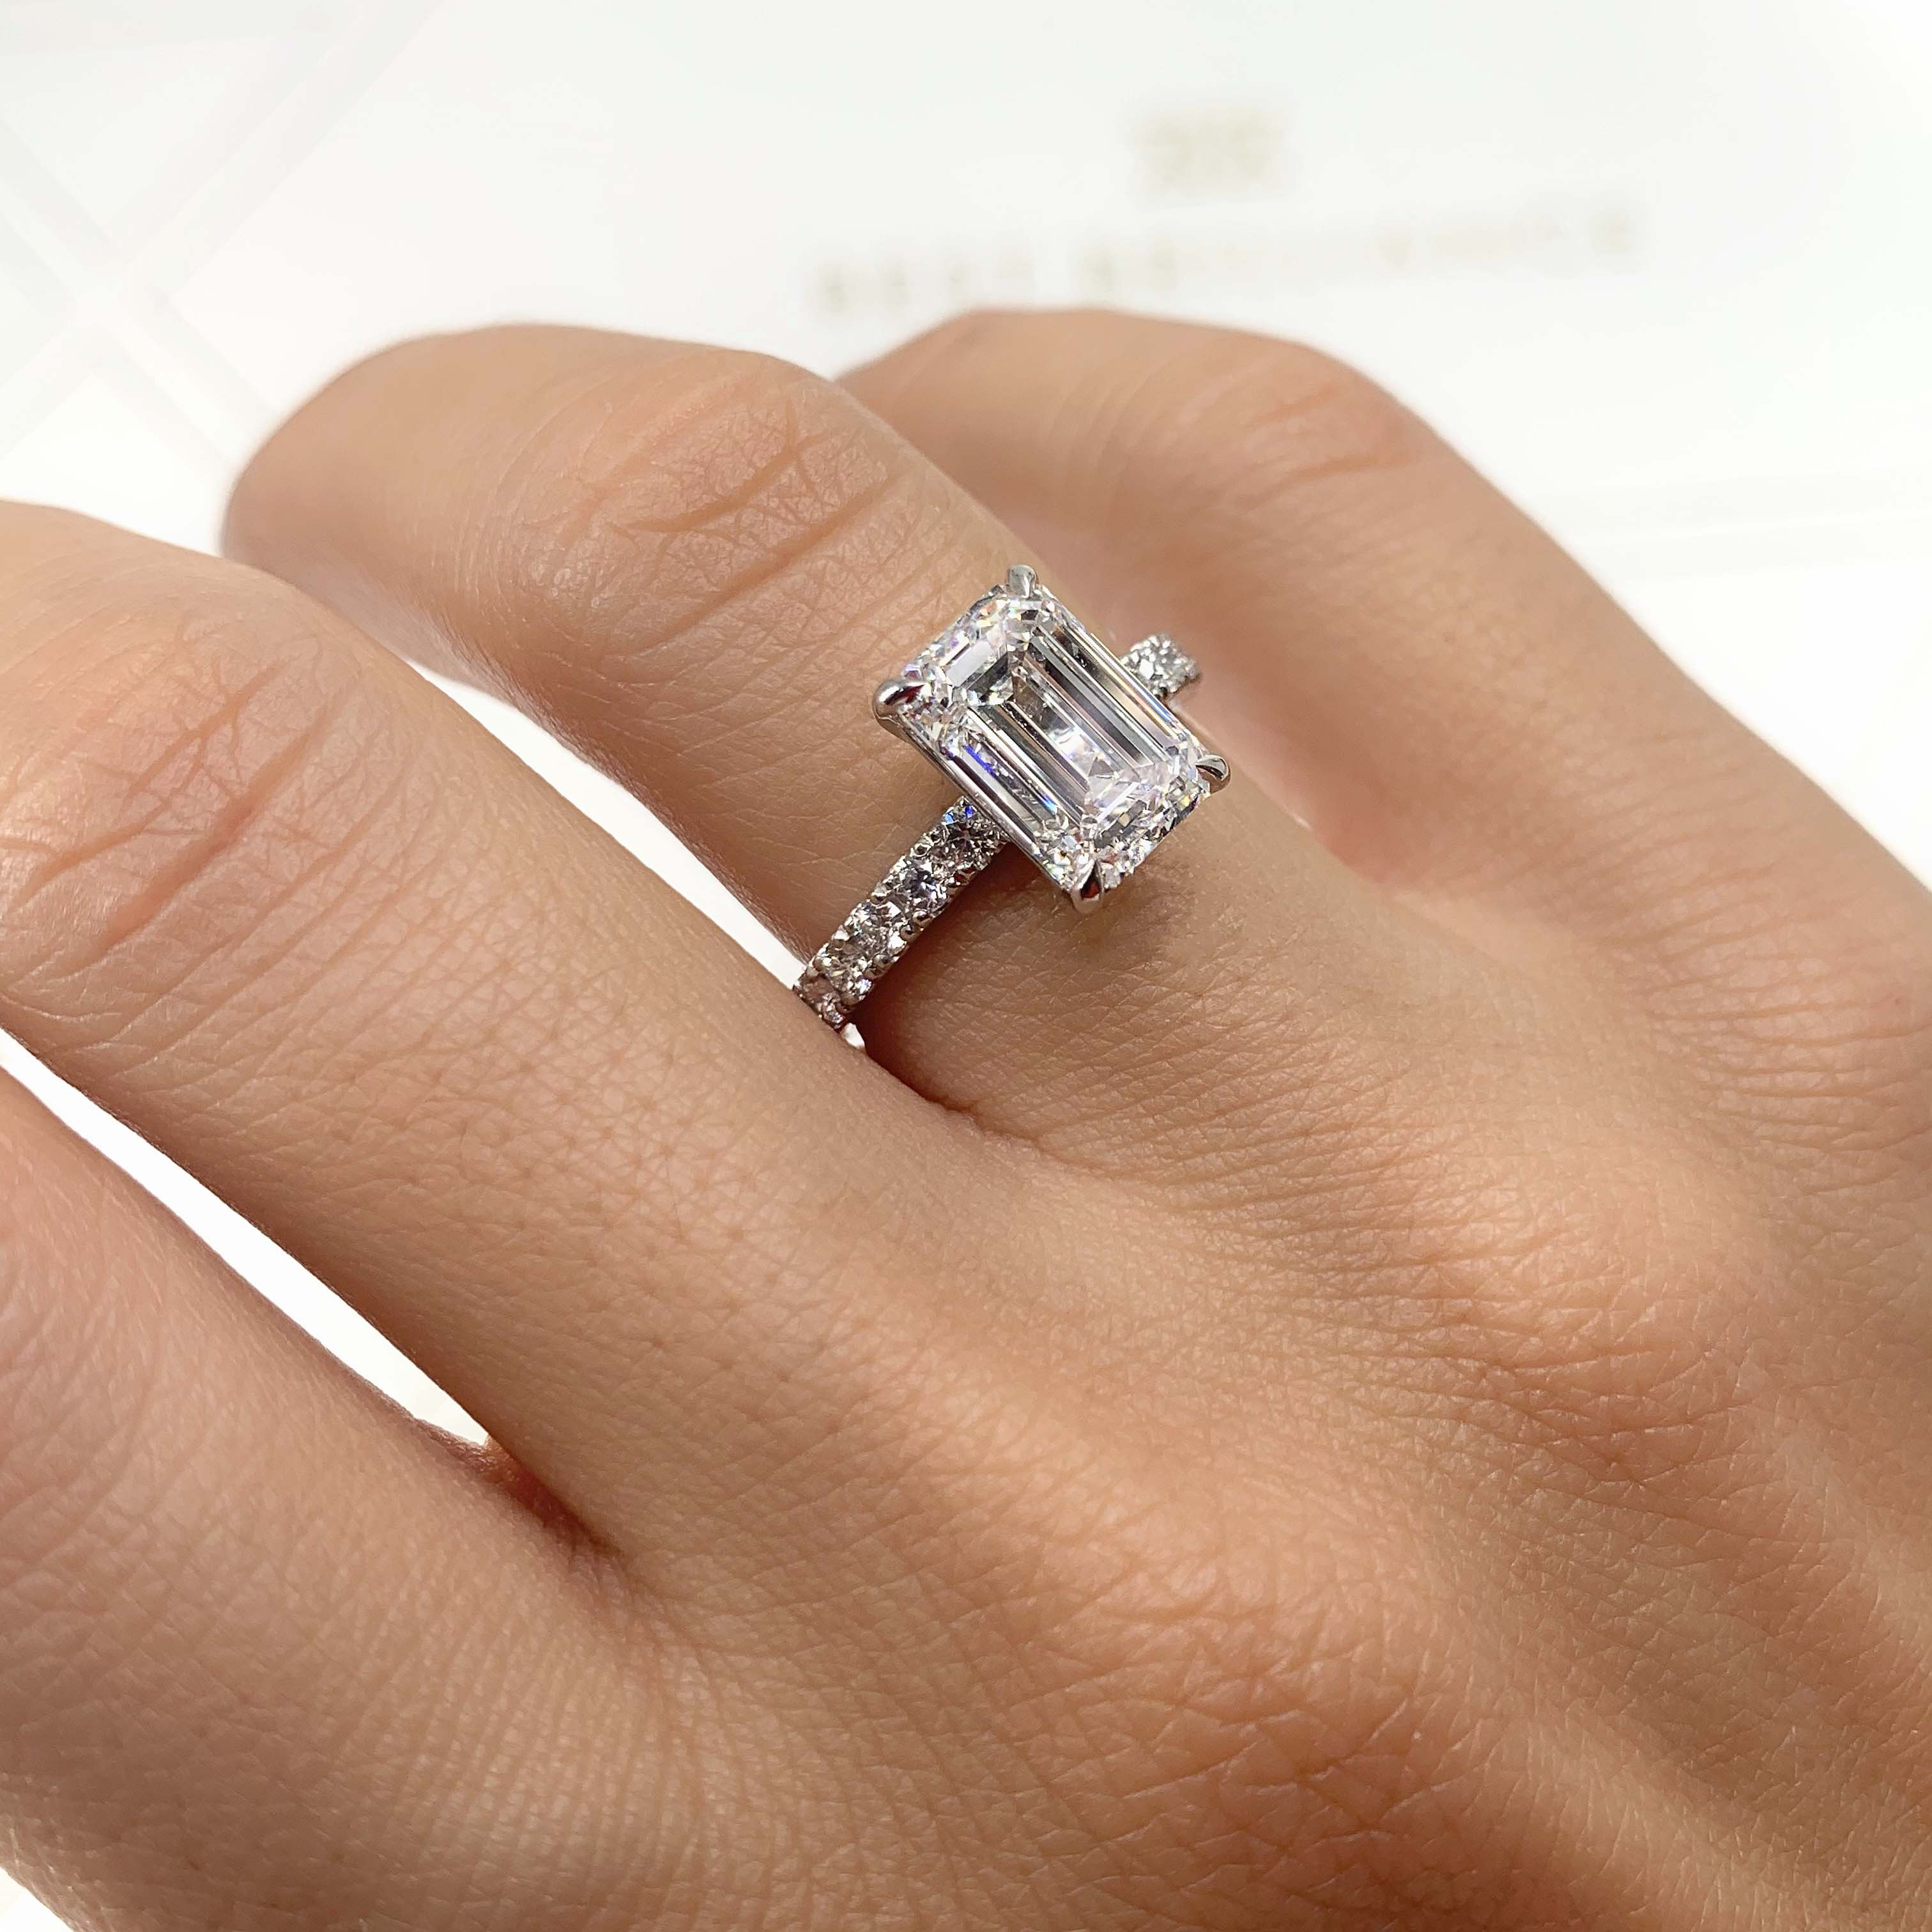 The Royal Engagement Ring (3.5 Carat)